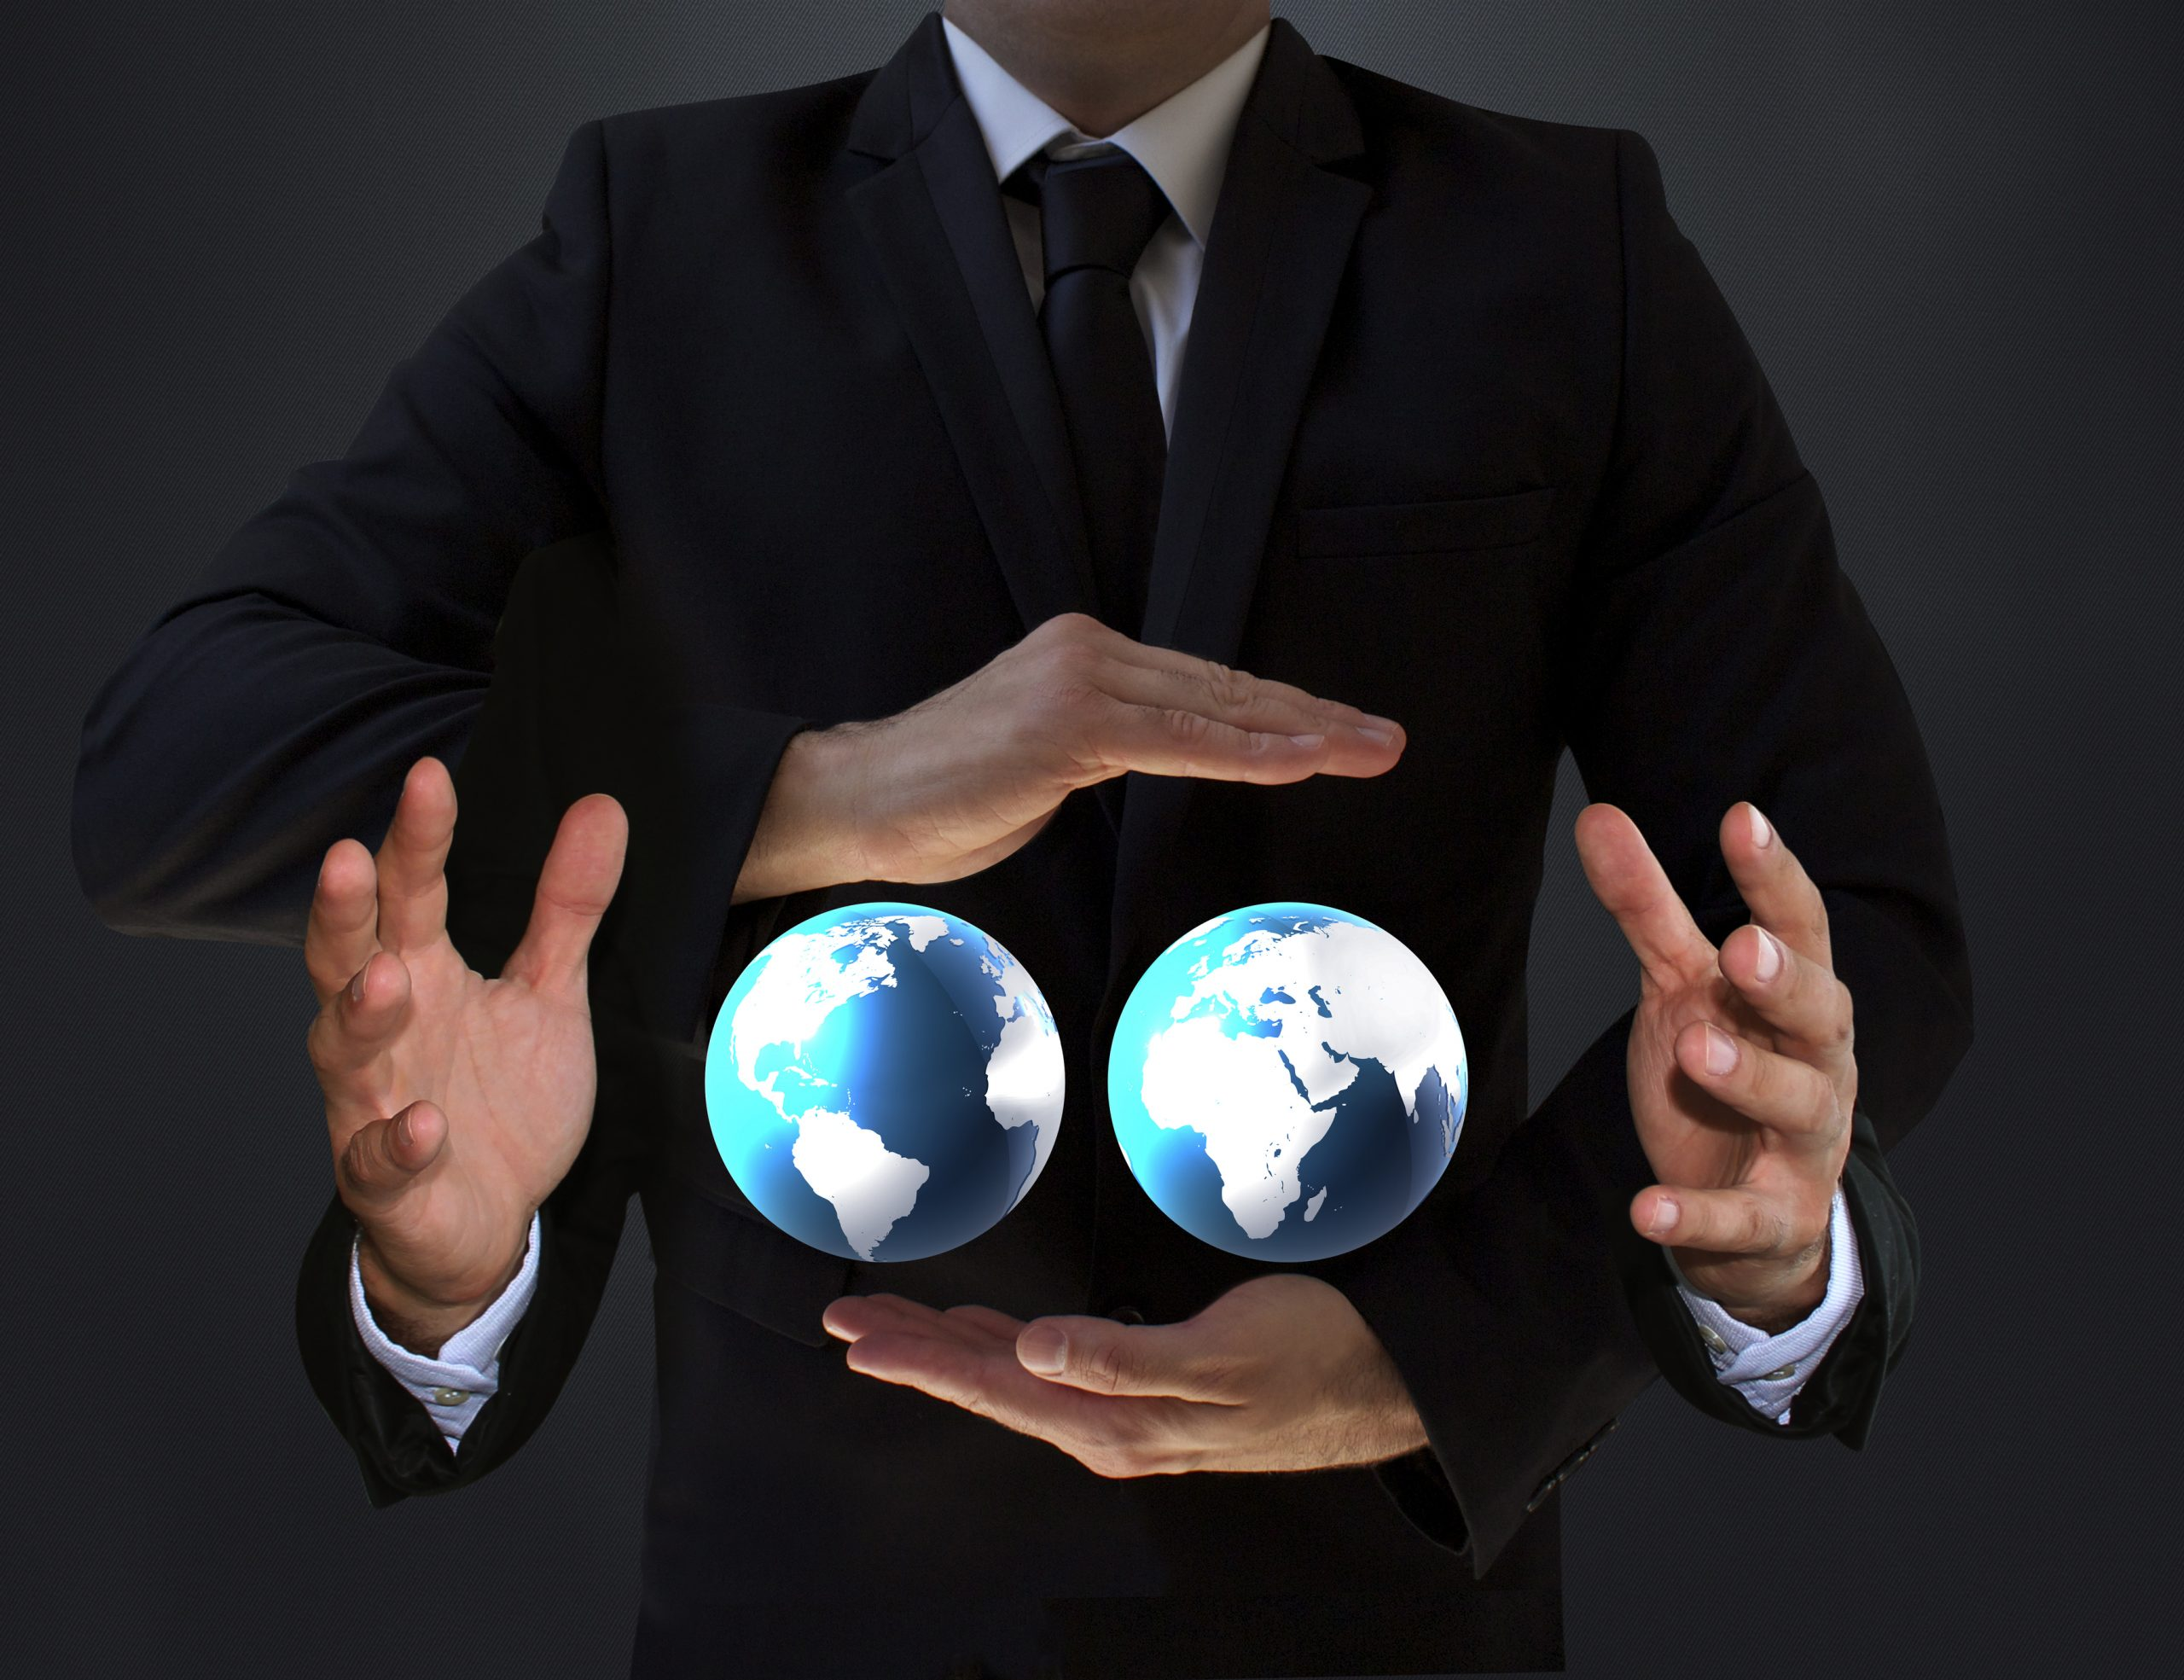 Global Business Uniting Different Worlds